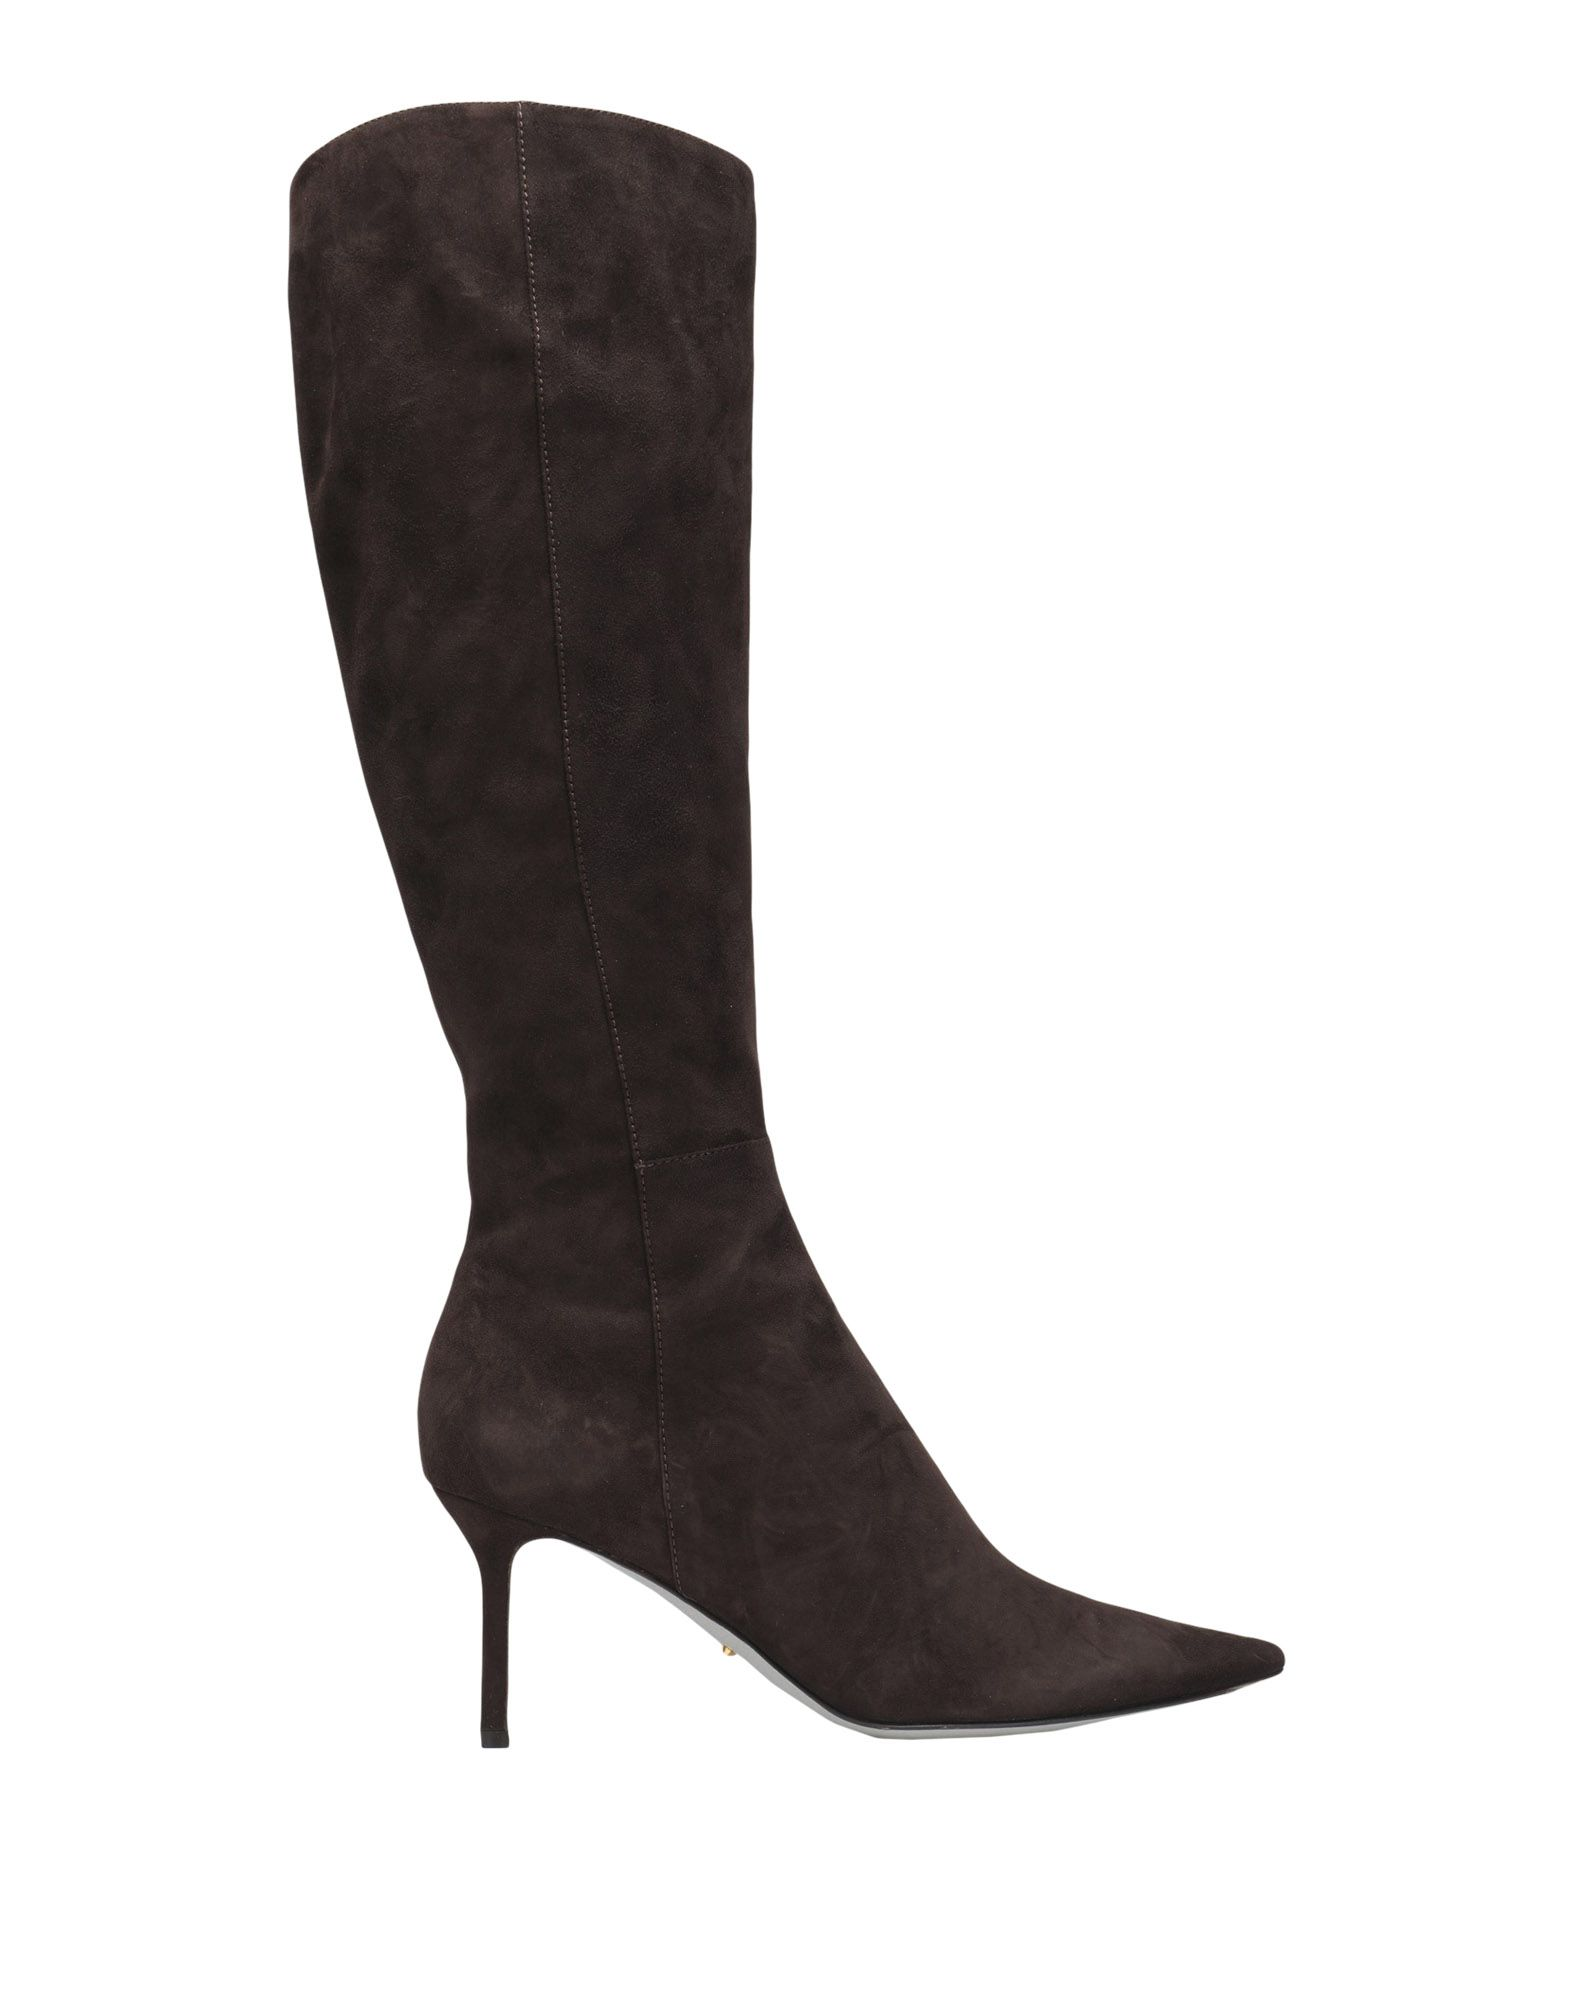 Sergio Rossi Boots Boots - Women Sergio Rossi Boots Boots online on  United Kingdom - 11526127DP 170201